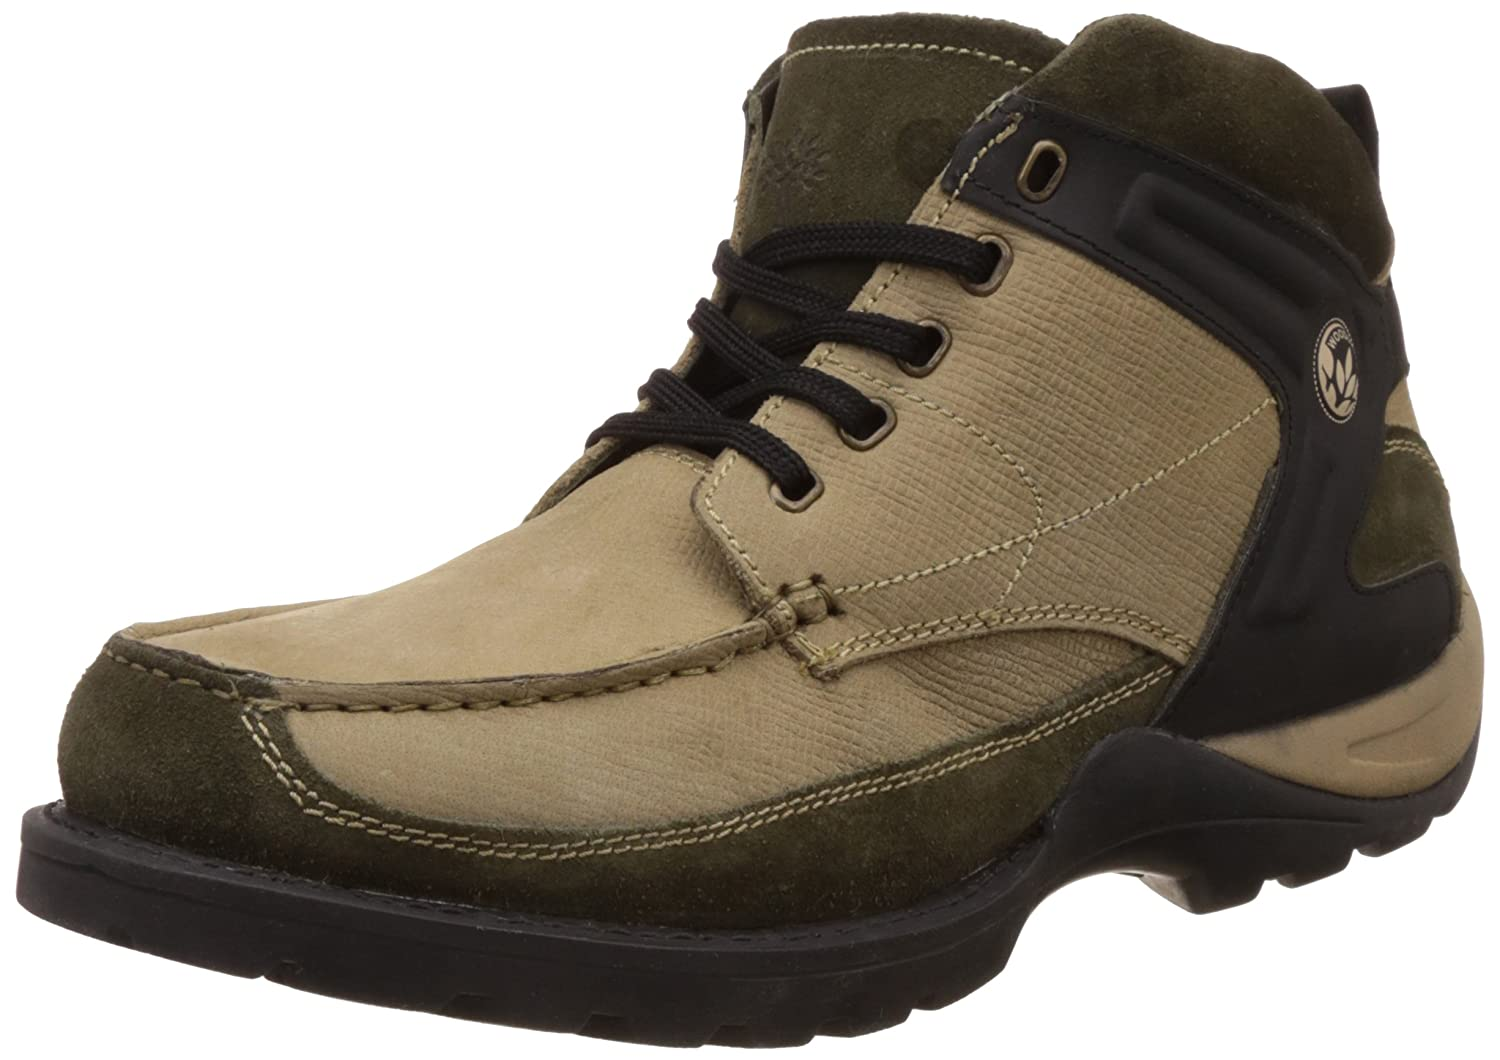 Leather Trekking and Hiking Boots